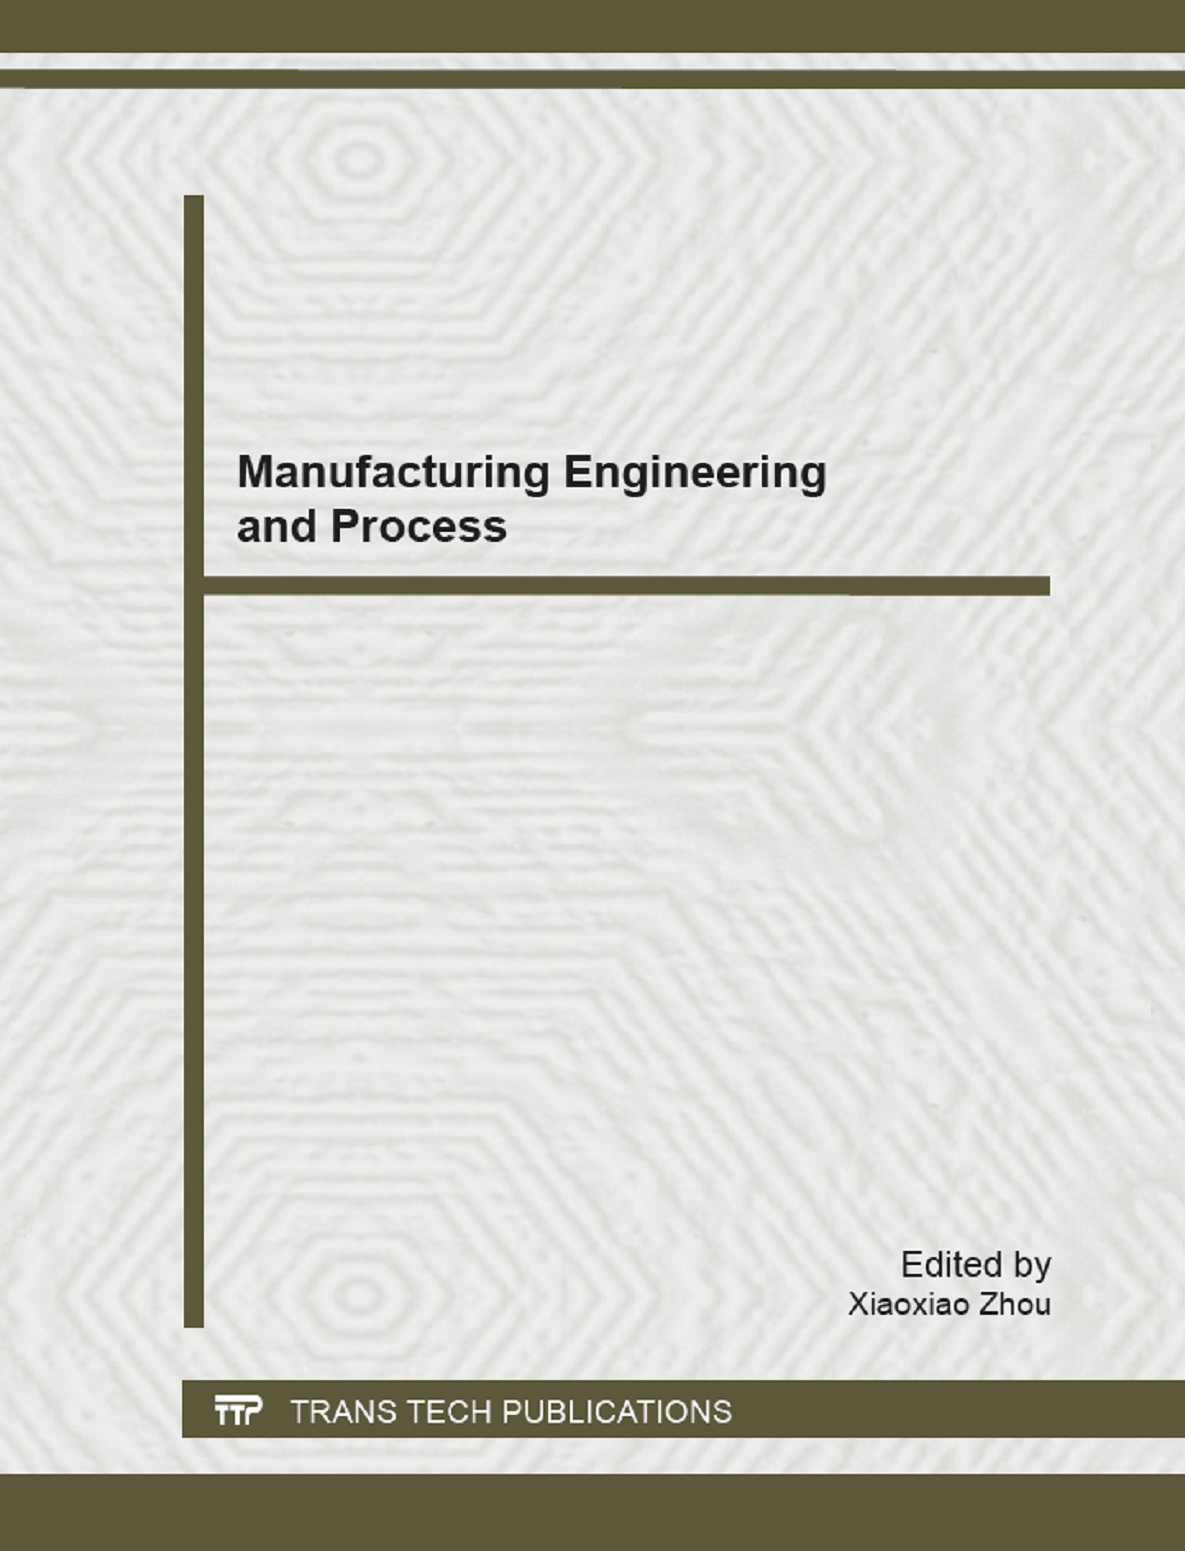 Manufacturing Engineering and Process